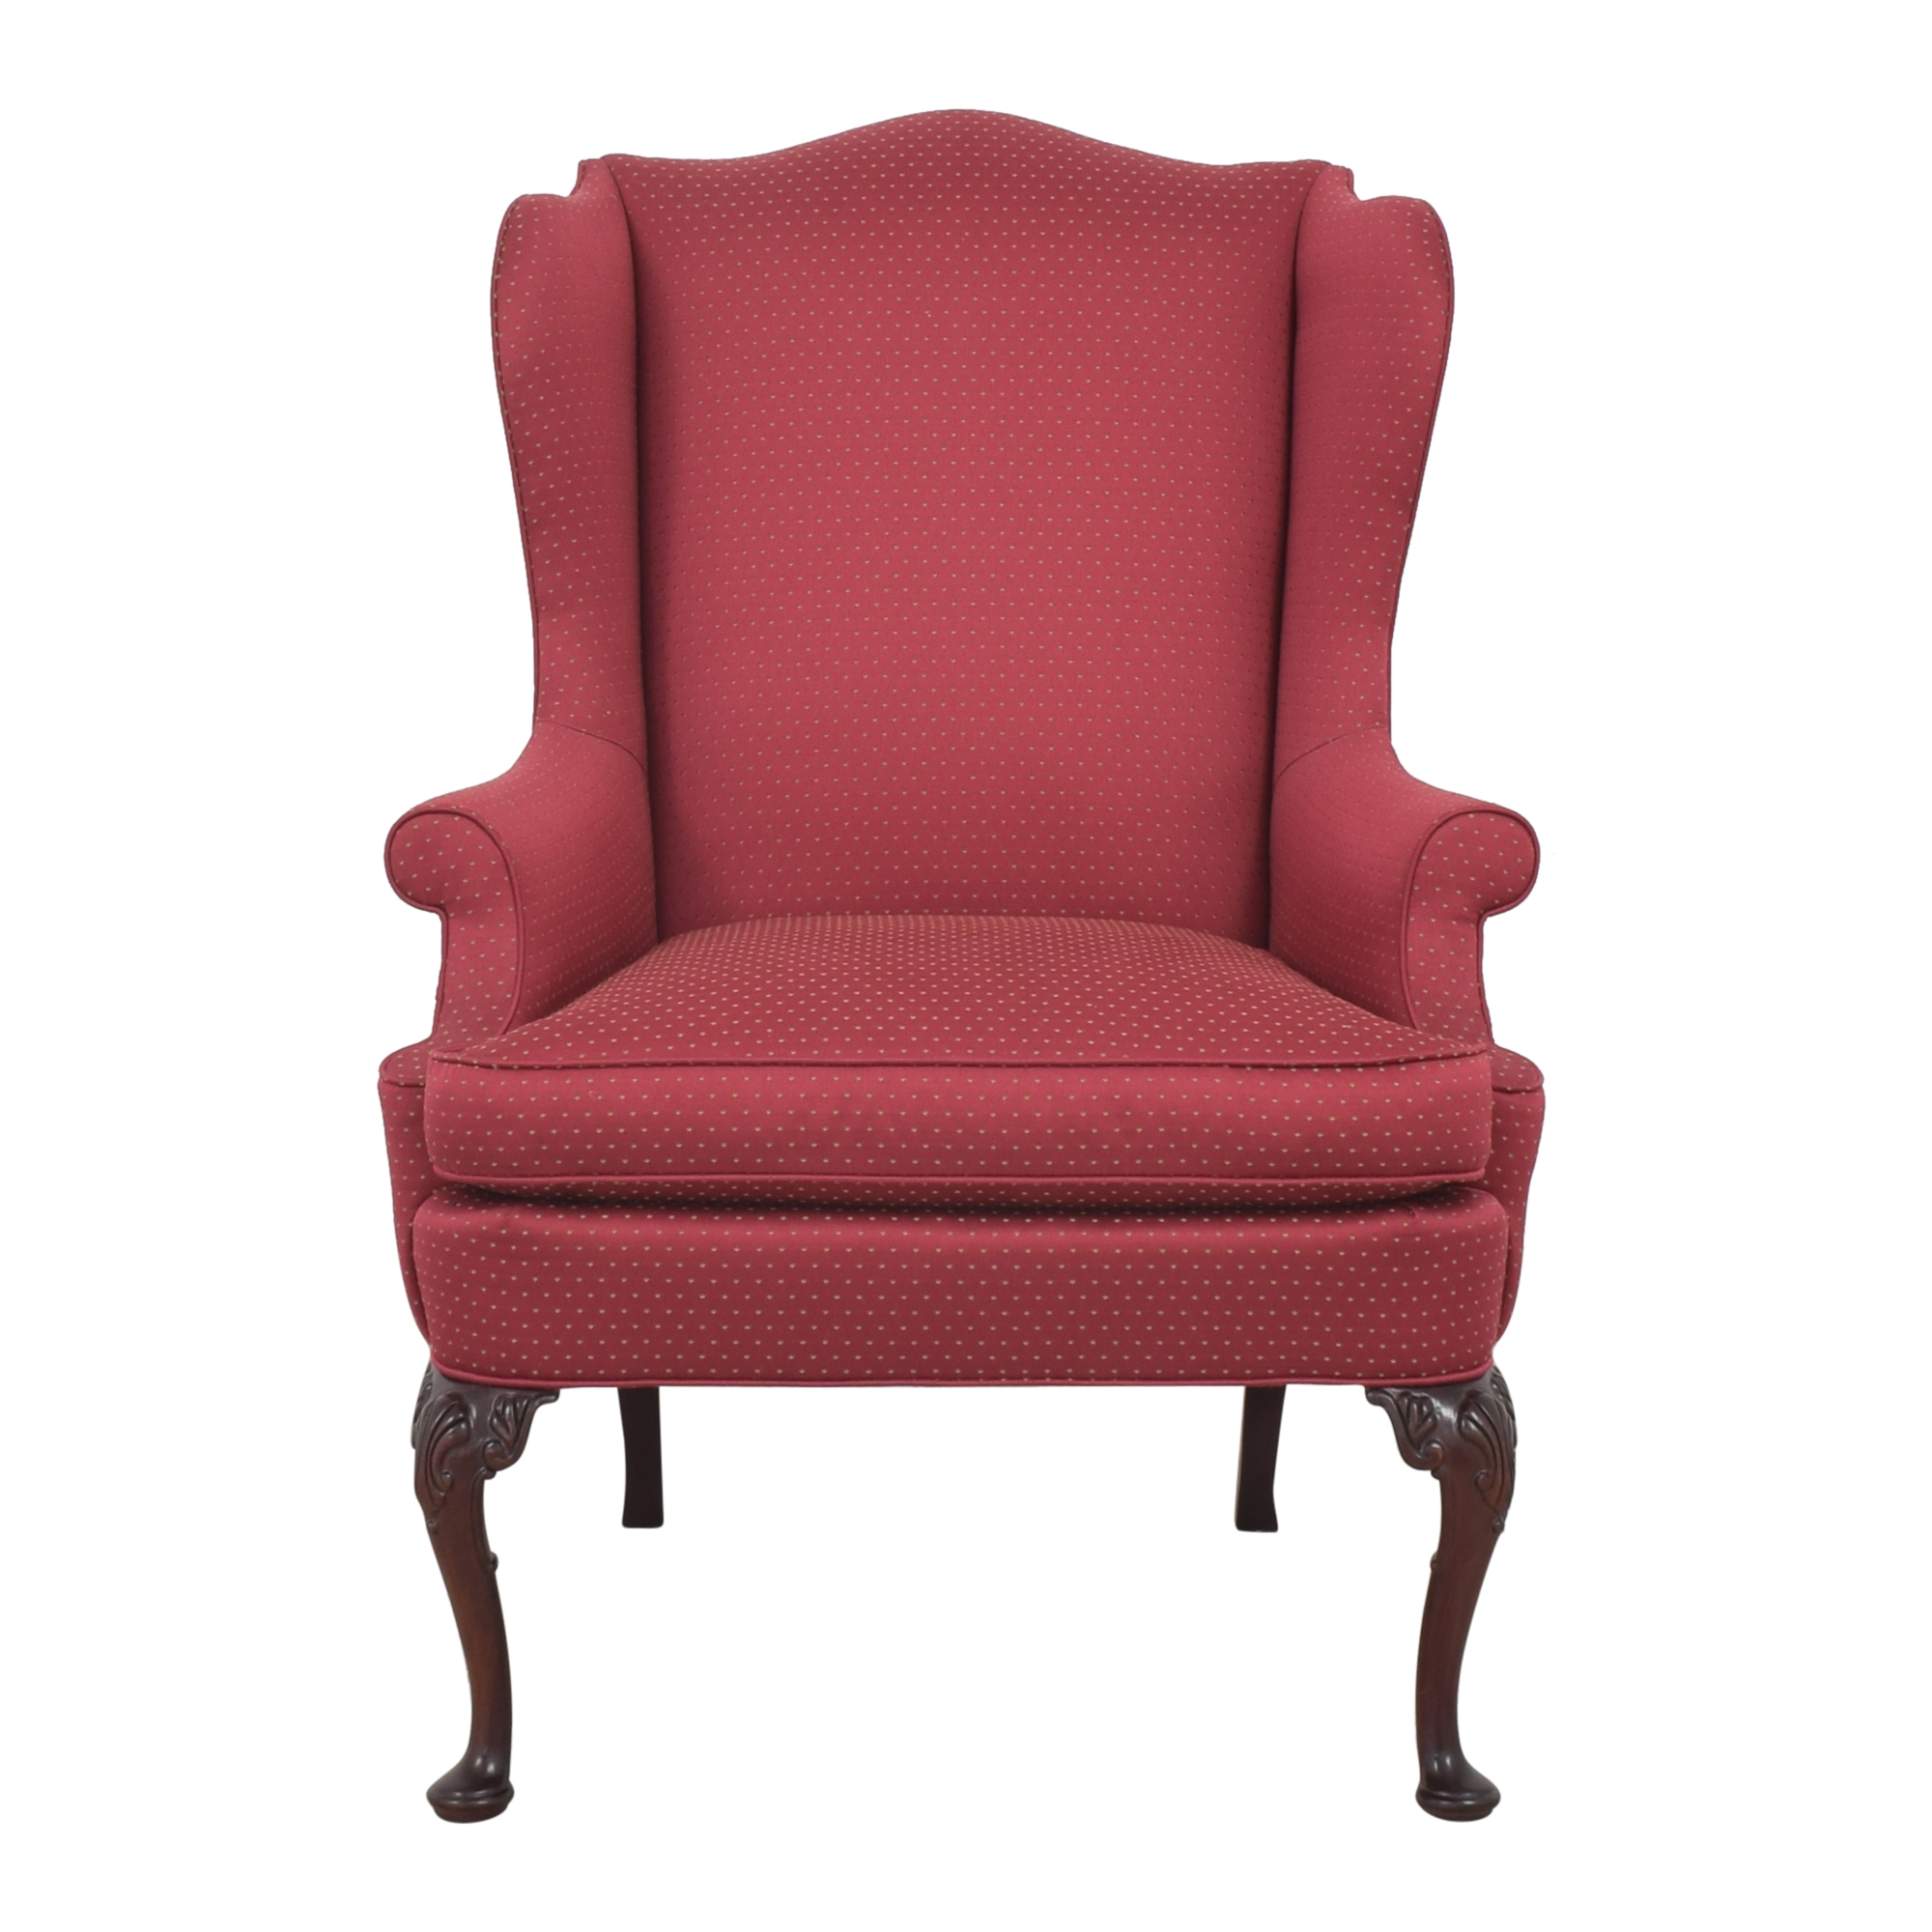 Hickory Chair Hickory Chair Wing Accent Chair red